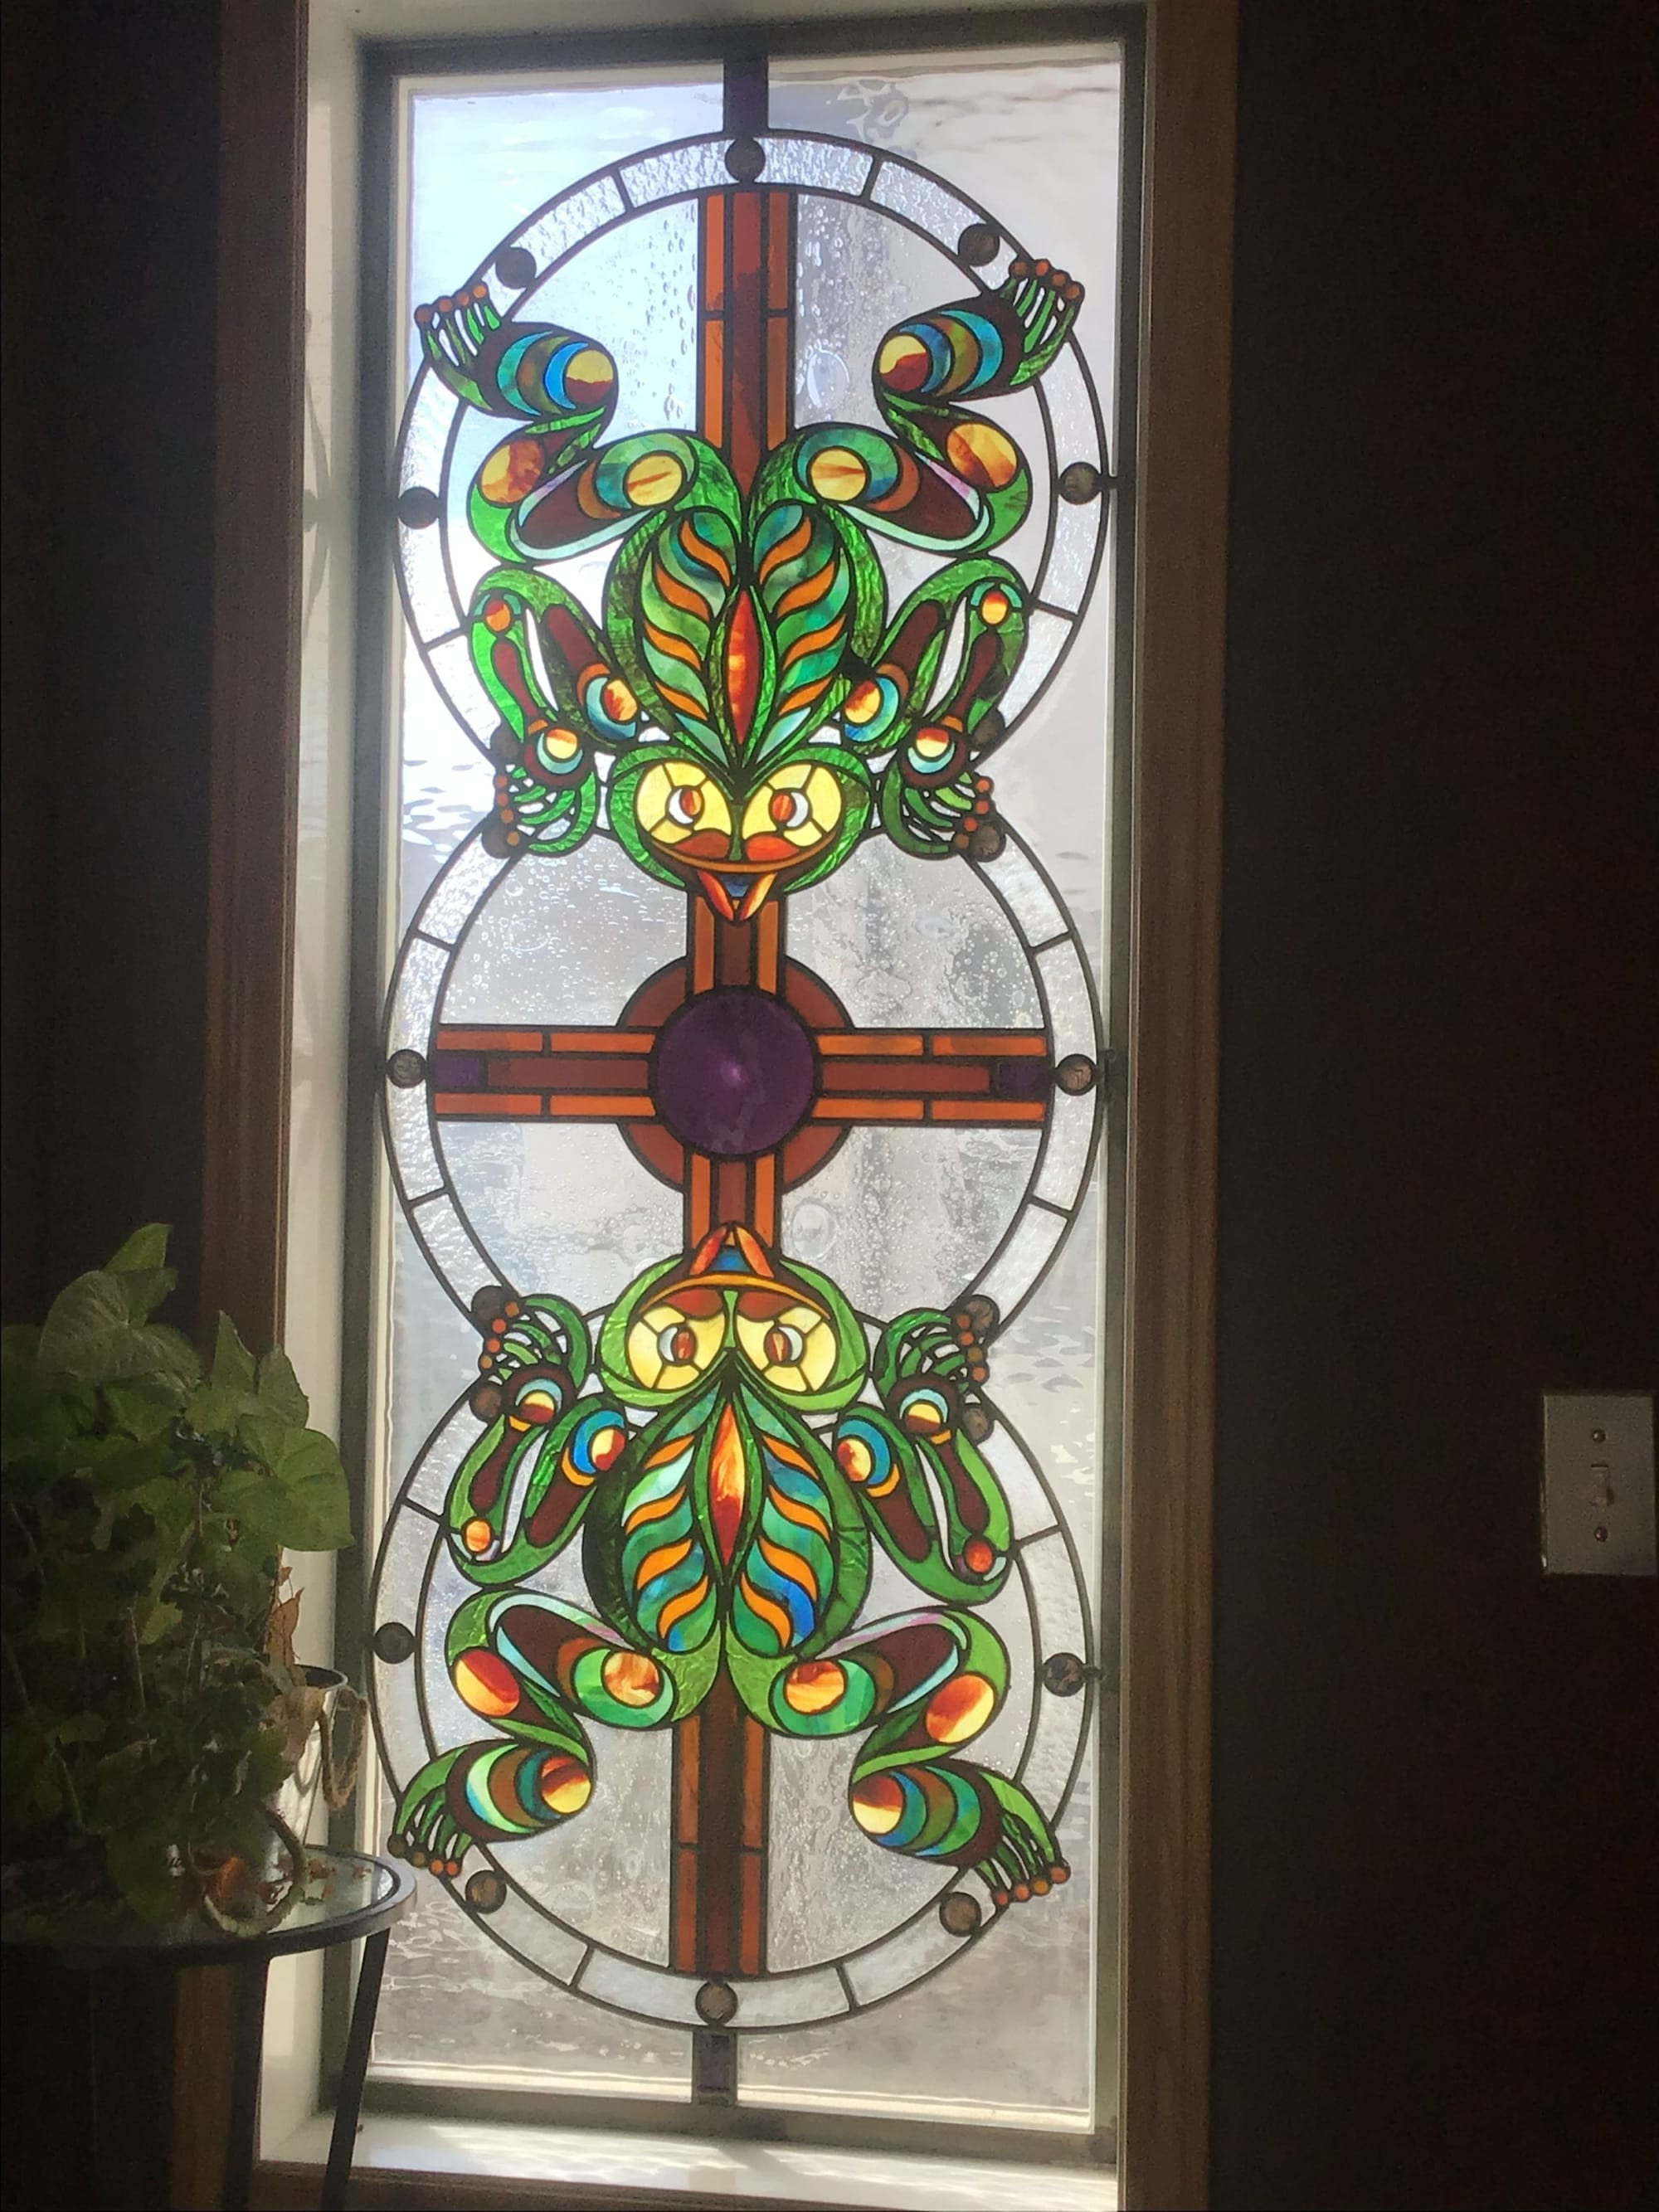 Stained glass window with 2 frogs